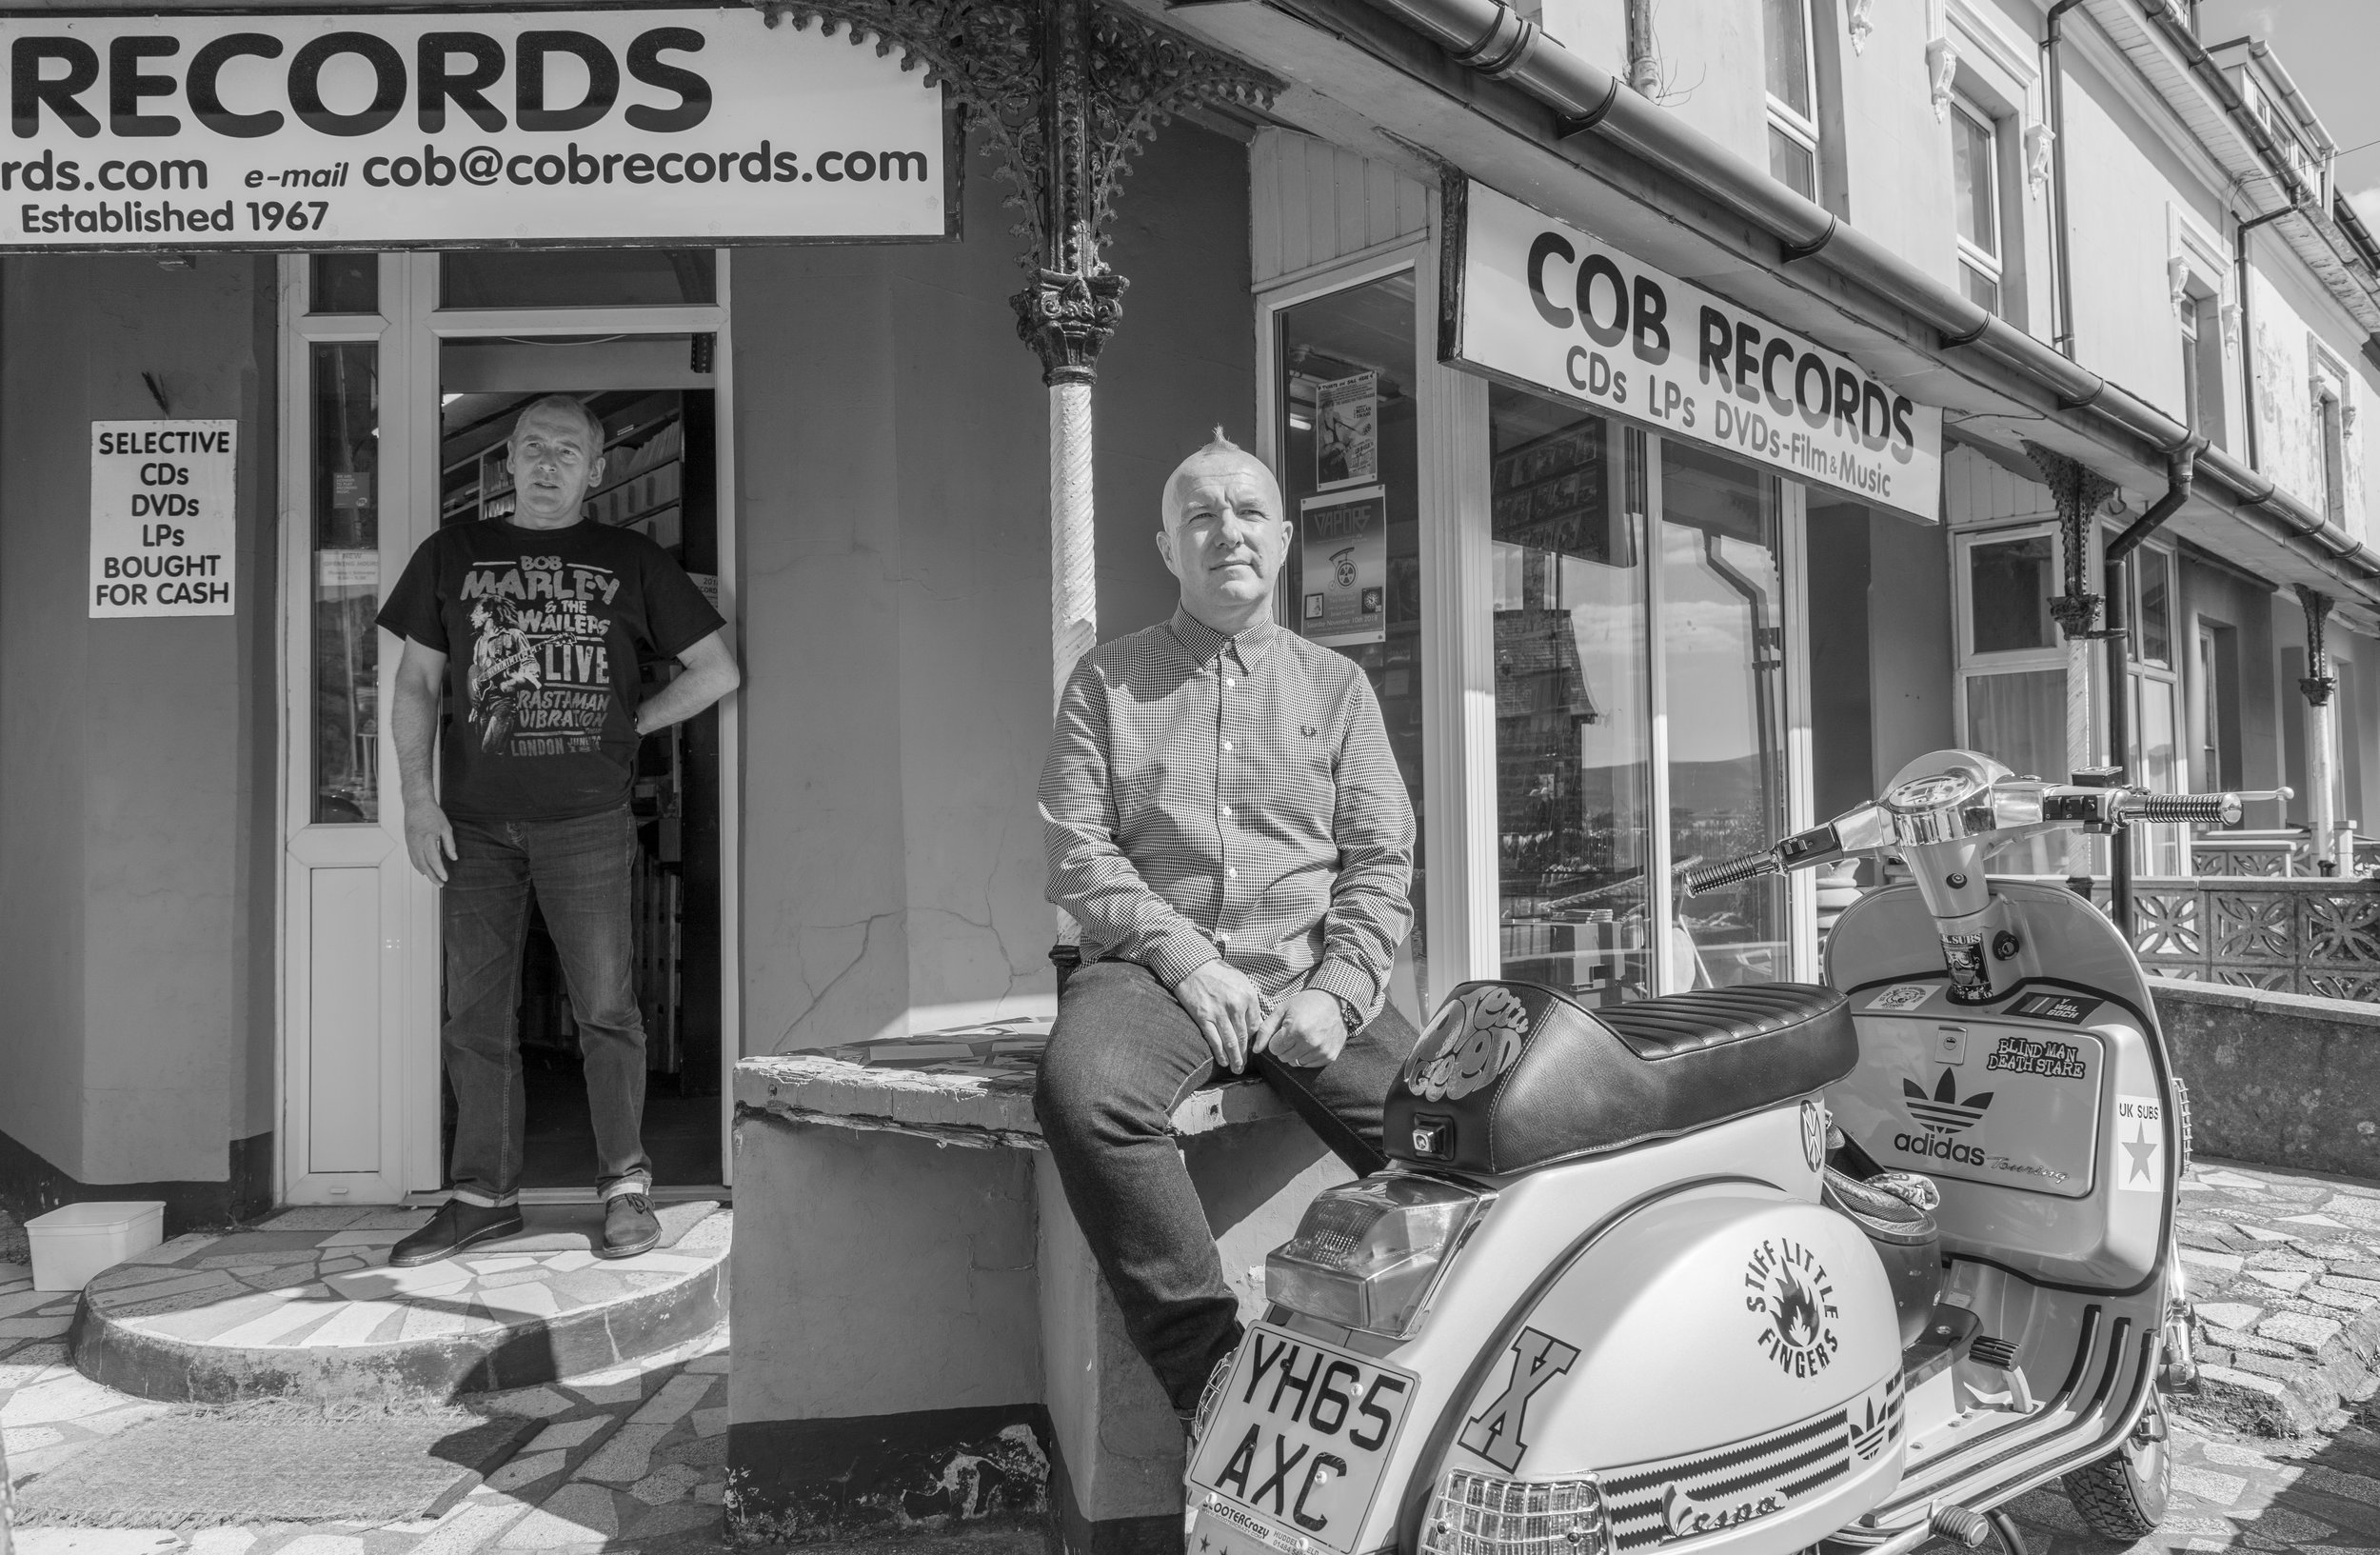 Lewgi Lewis outside Cob Records store in Porthmadog ©Haydn Denman